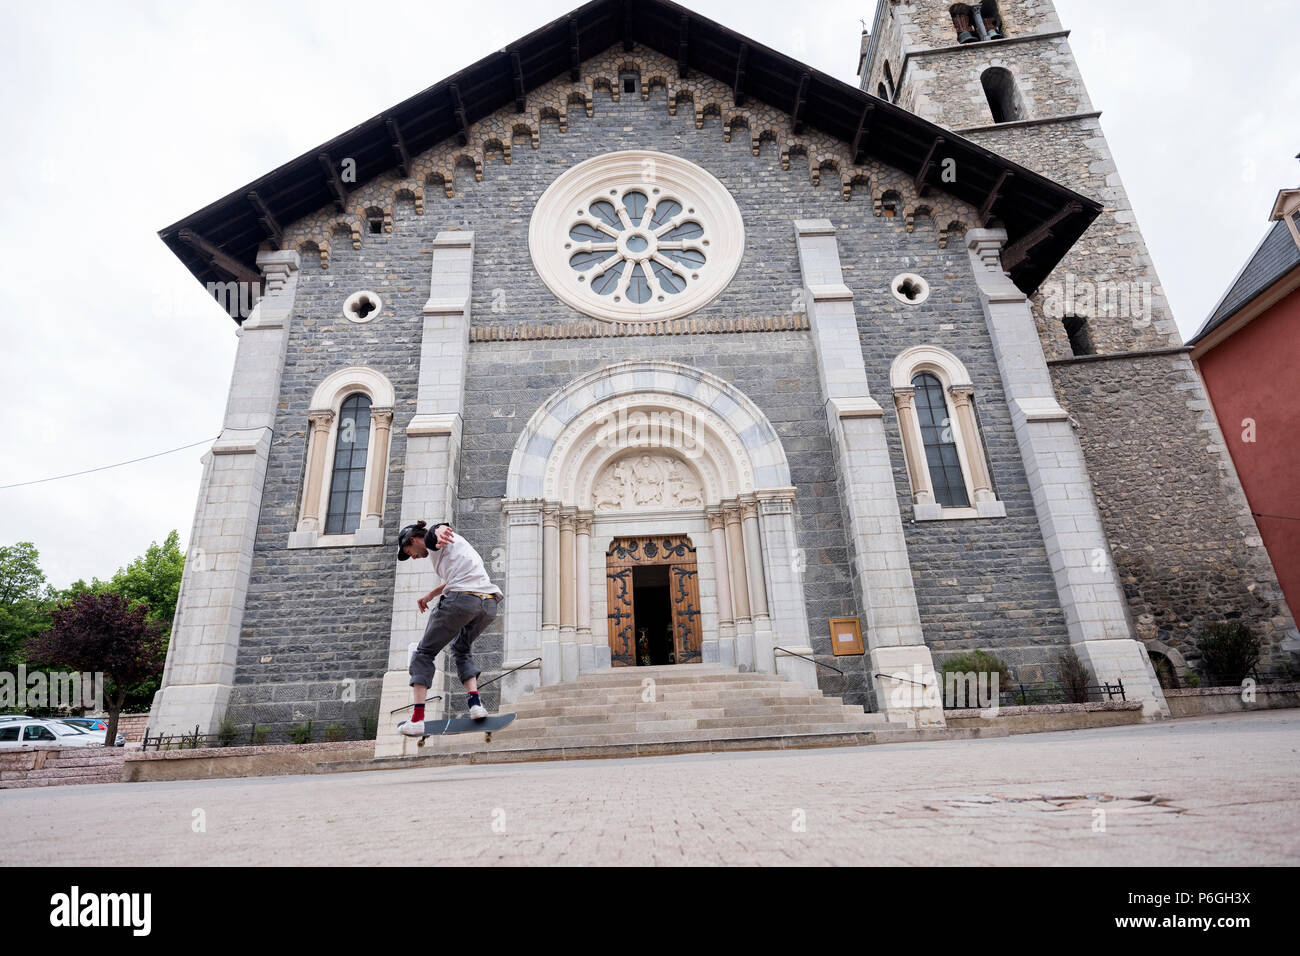 boy stunts on skate board in front of catholic church in barcelonette - Stock Image